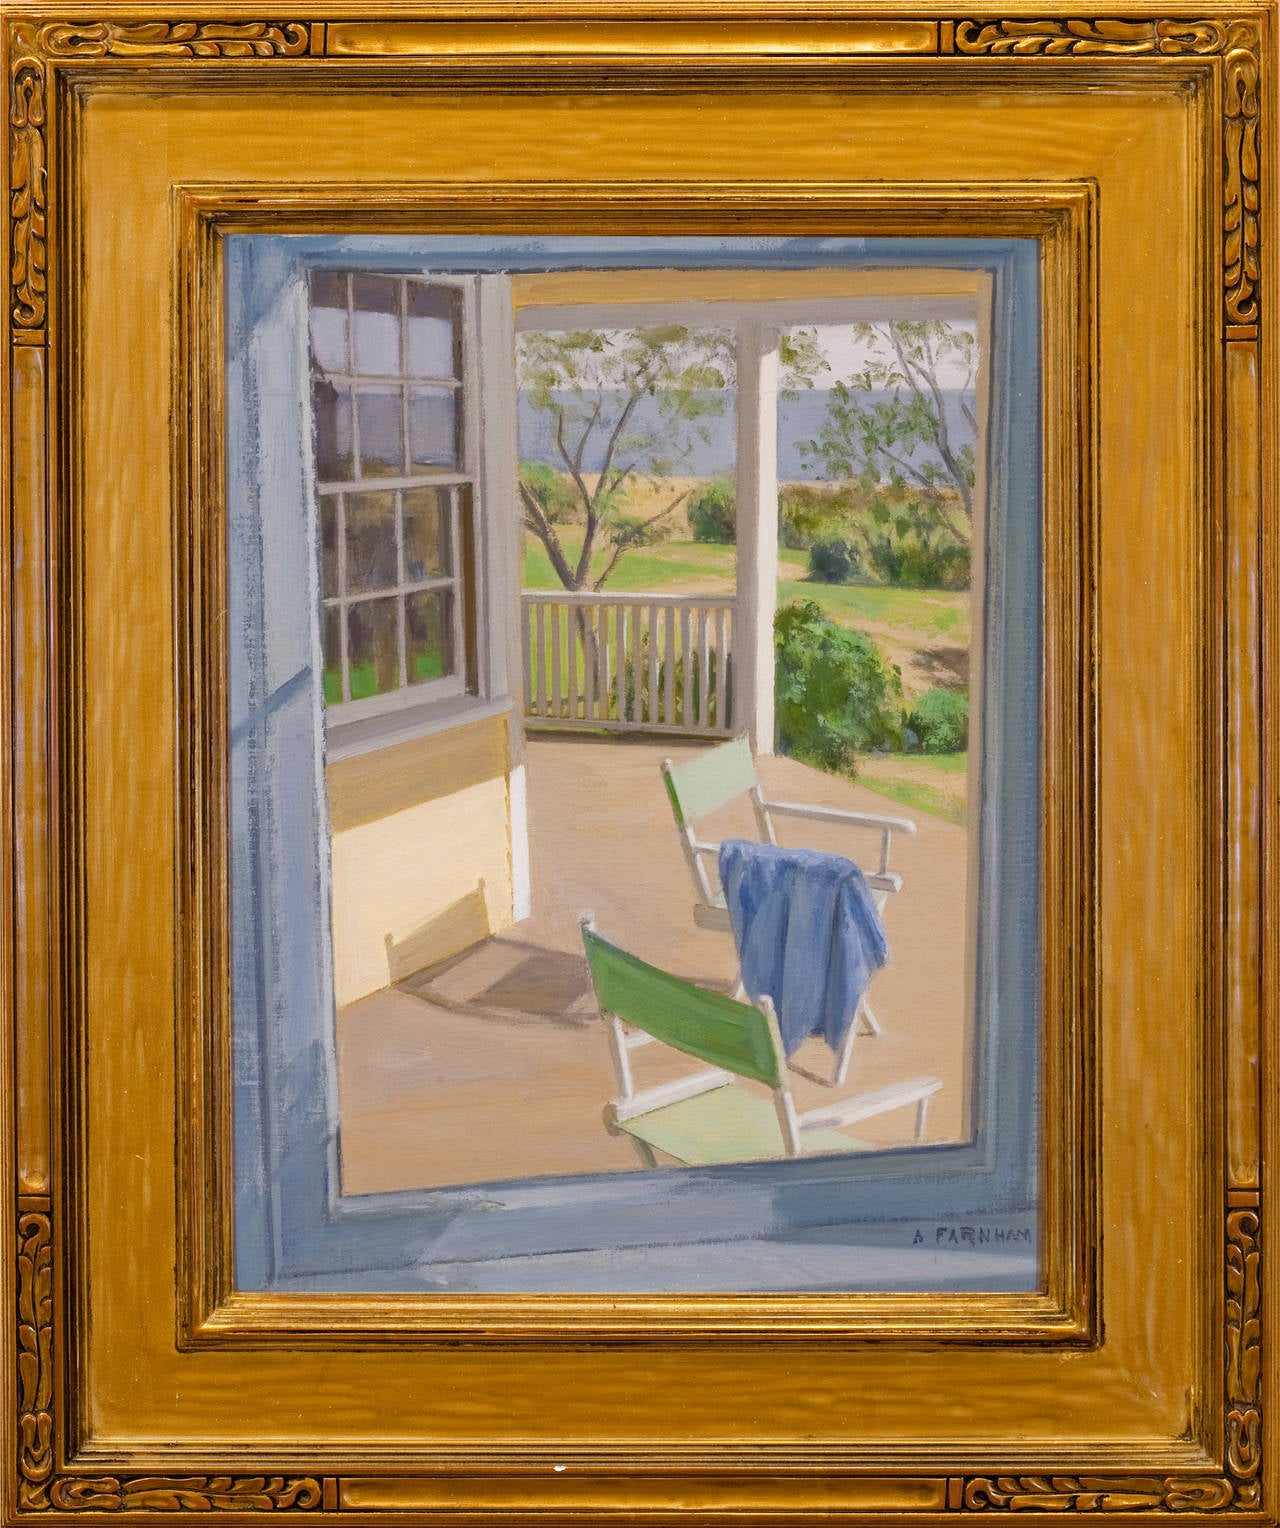 """Alexander Farnham Landscape Painting - """"View from Dining Room Window"""""""